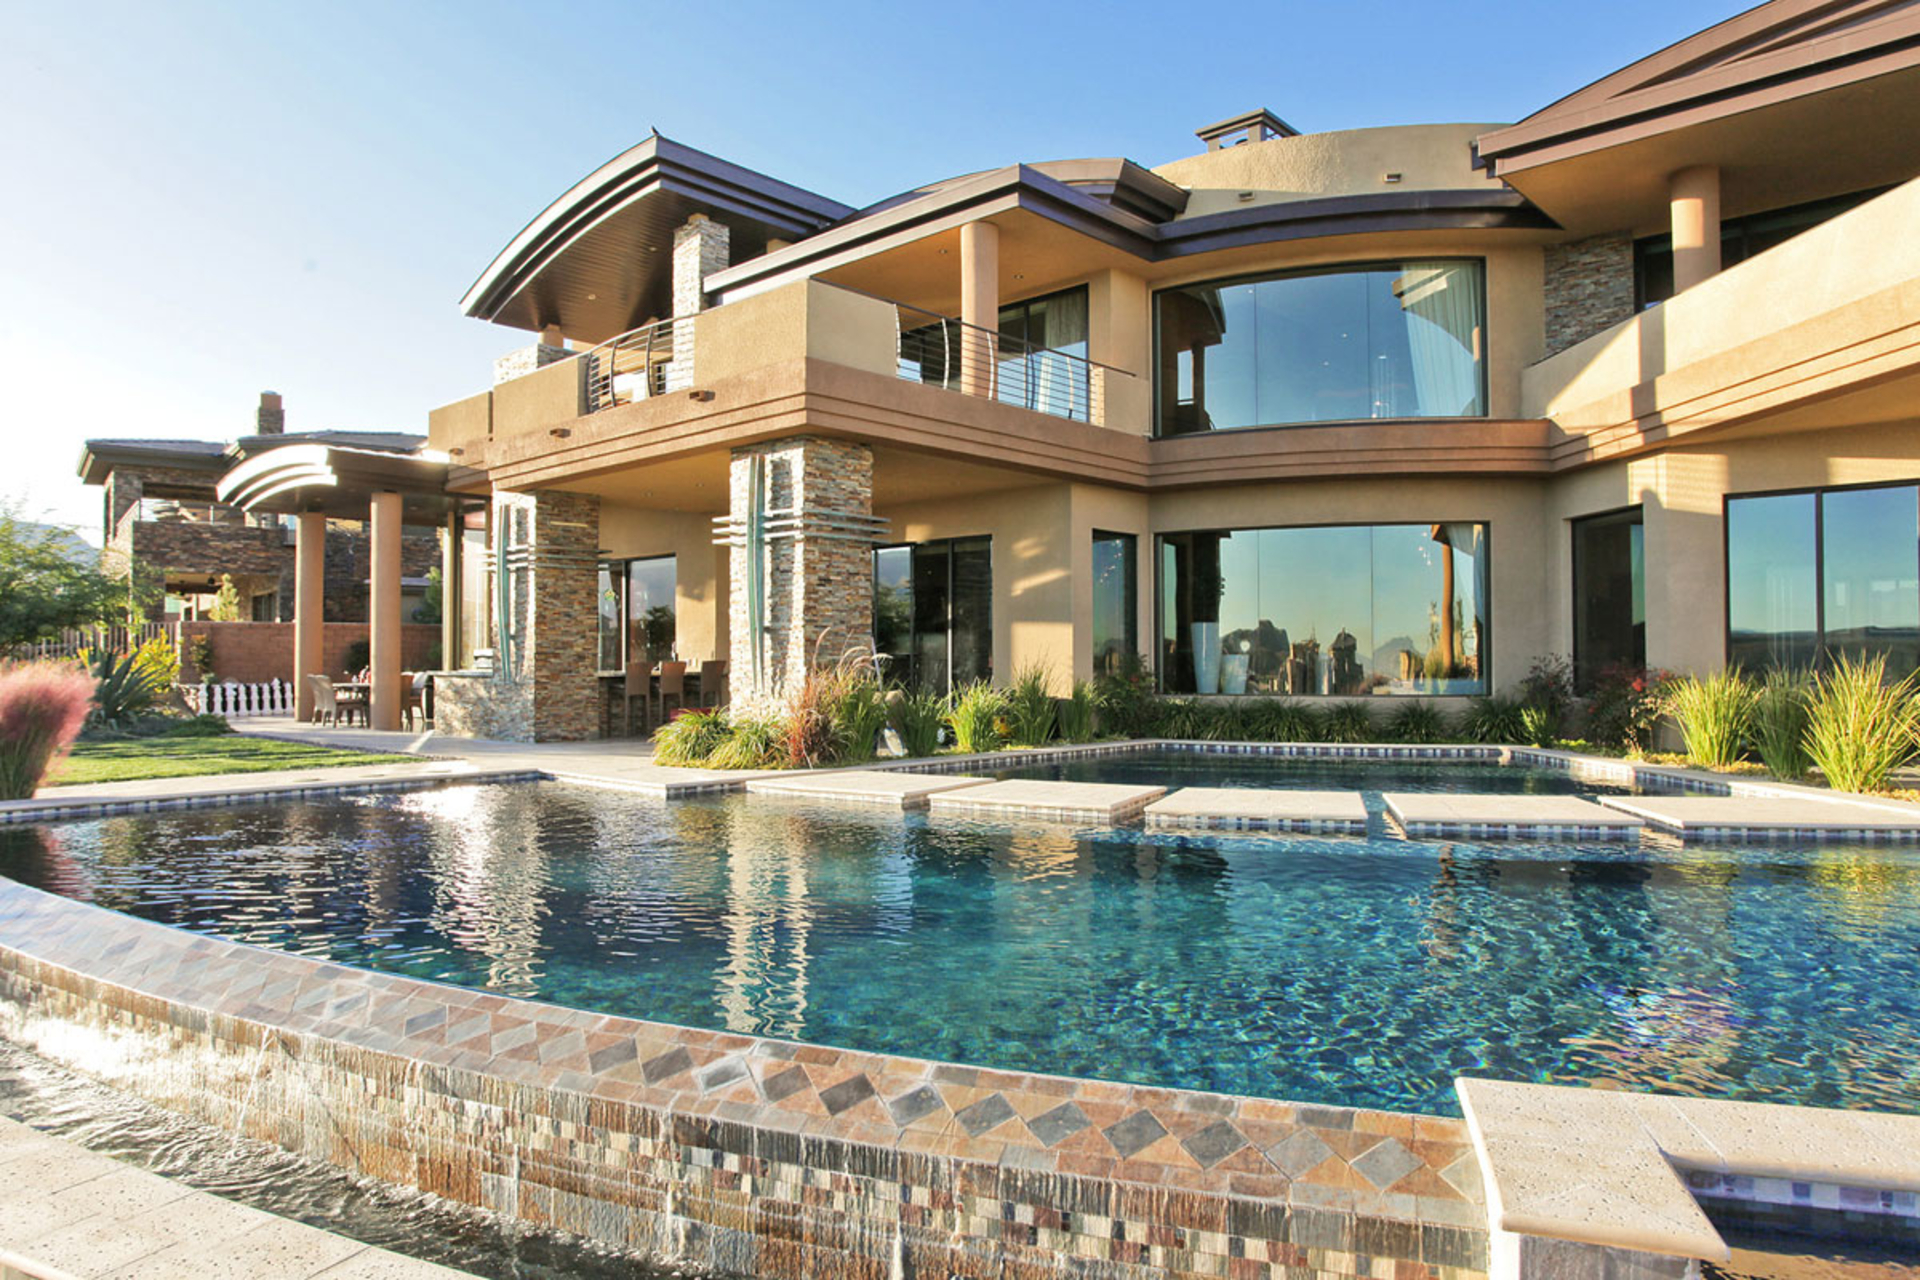 exterior-designs-awesome-beautiful-homes-with-pools-with-garden-with-outdoor-pool-with-garden-lamp-stunning-and-beautiful-homes-with-pools-ideas.jpg